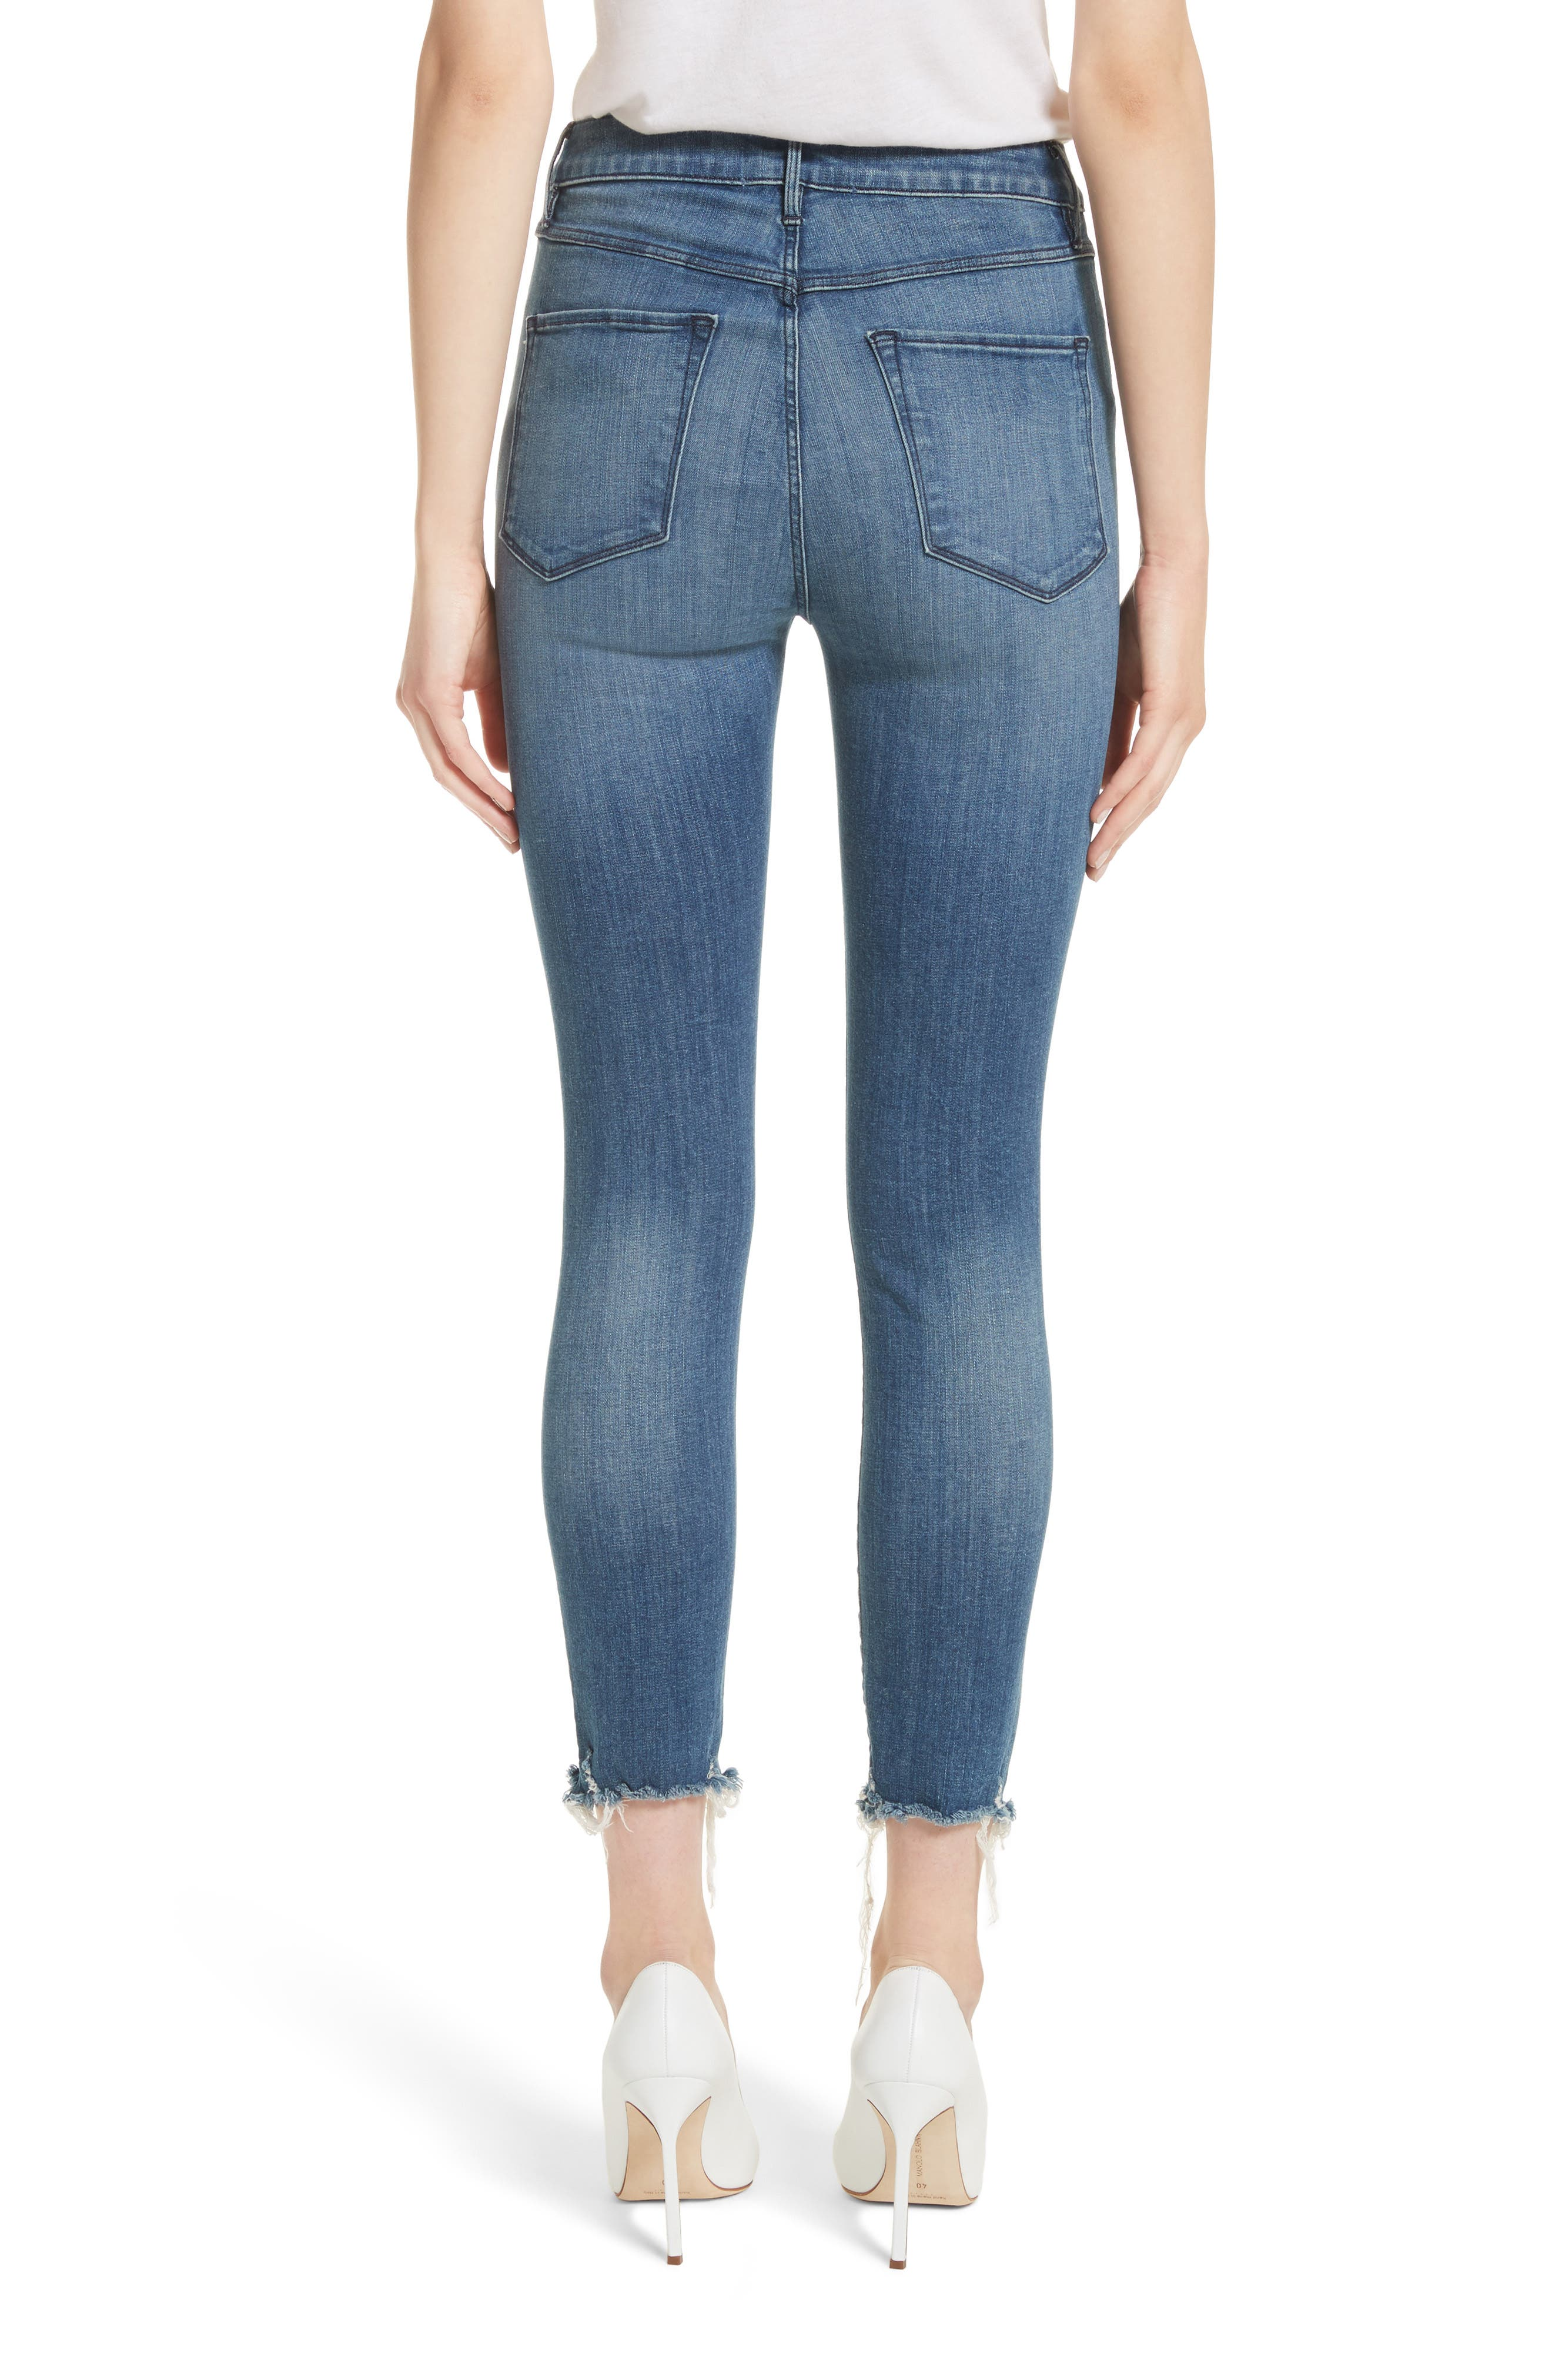 W3 Crop Skinny Jeans,                             Alternate thumbnail 2, color,                             Remo